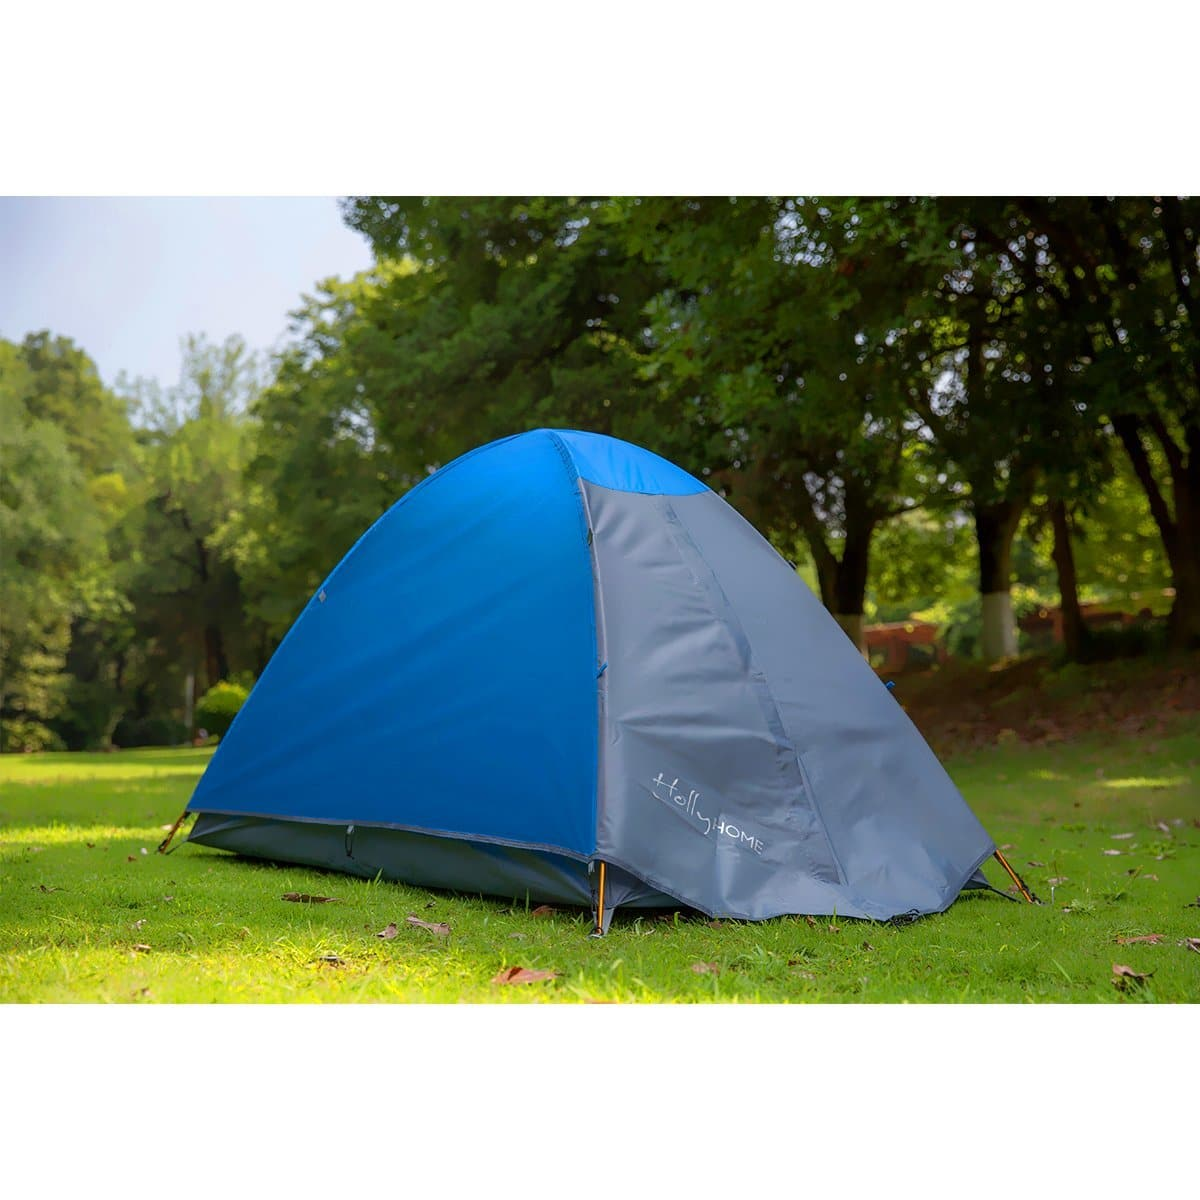 Backpacking Tent with Carrying Bag & Accessories - Double Layer, 4 Seasons, Lightweight and Water Resistant @Amazon $20